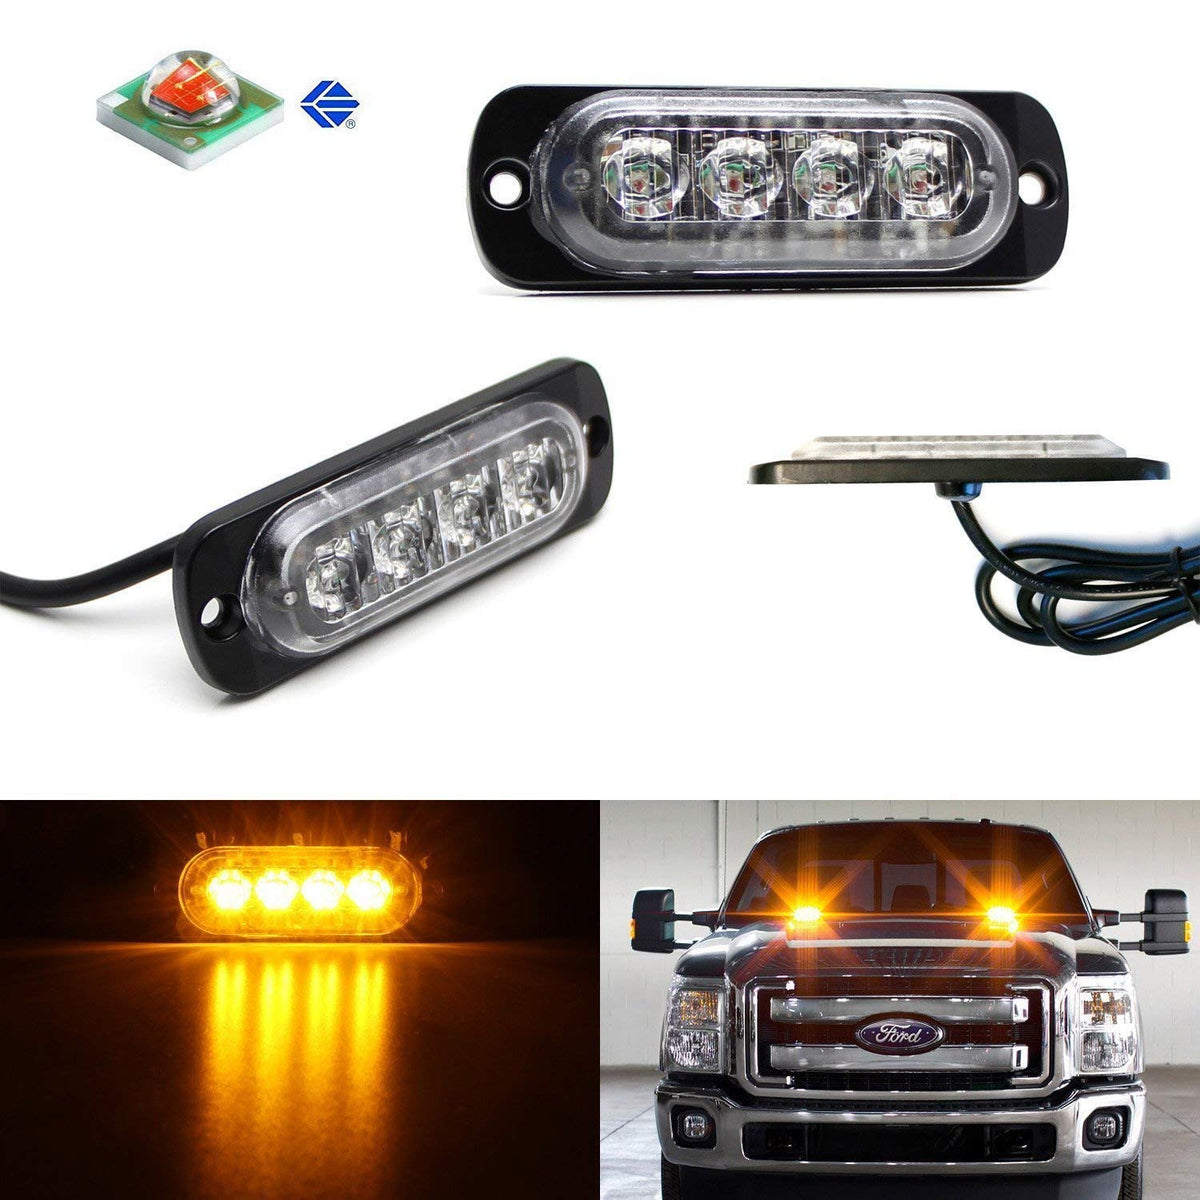 Led Strobe Lights For Trucks >> Ultra Slim Amber Or Amber White Led Strobe Warning Light Flashers For Truck Jeep 4x4 Atv Construction Vehicles Powered By High Power Cree Led